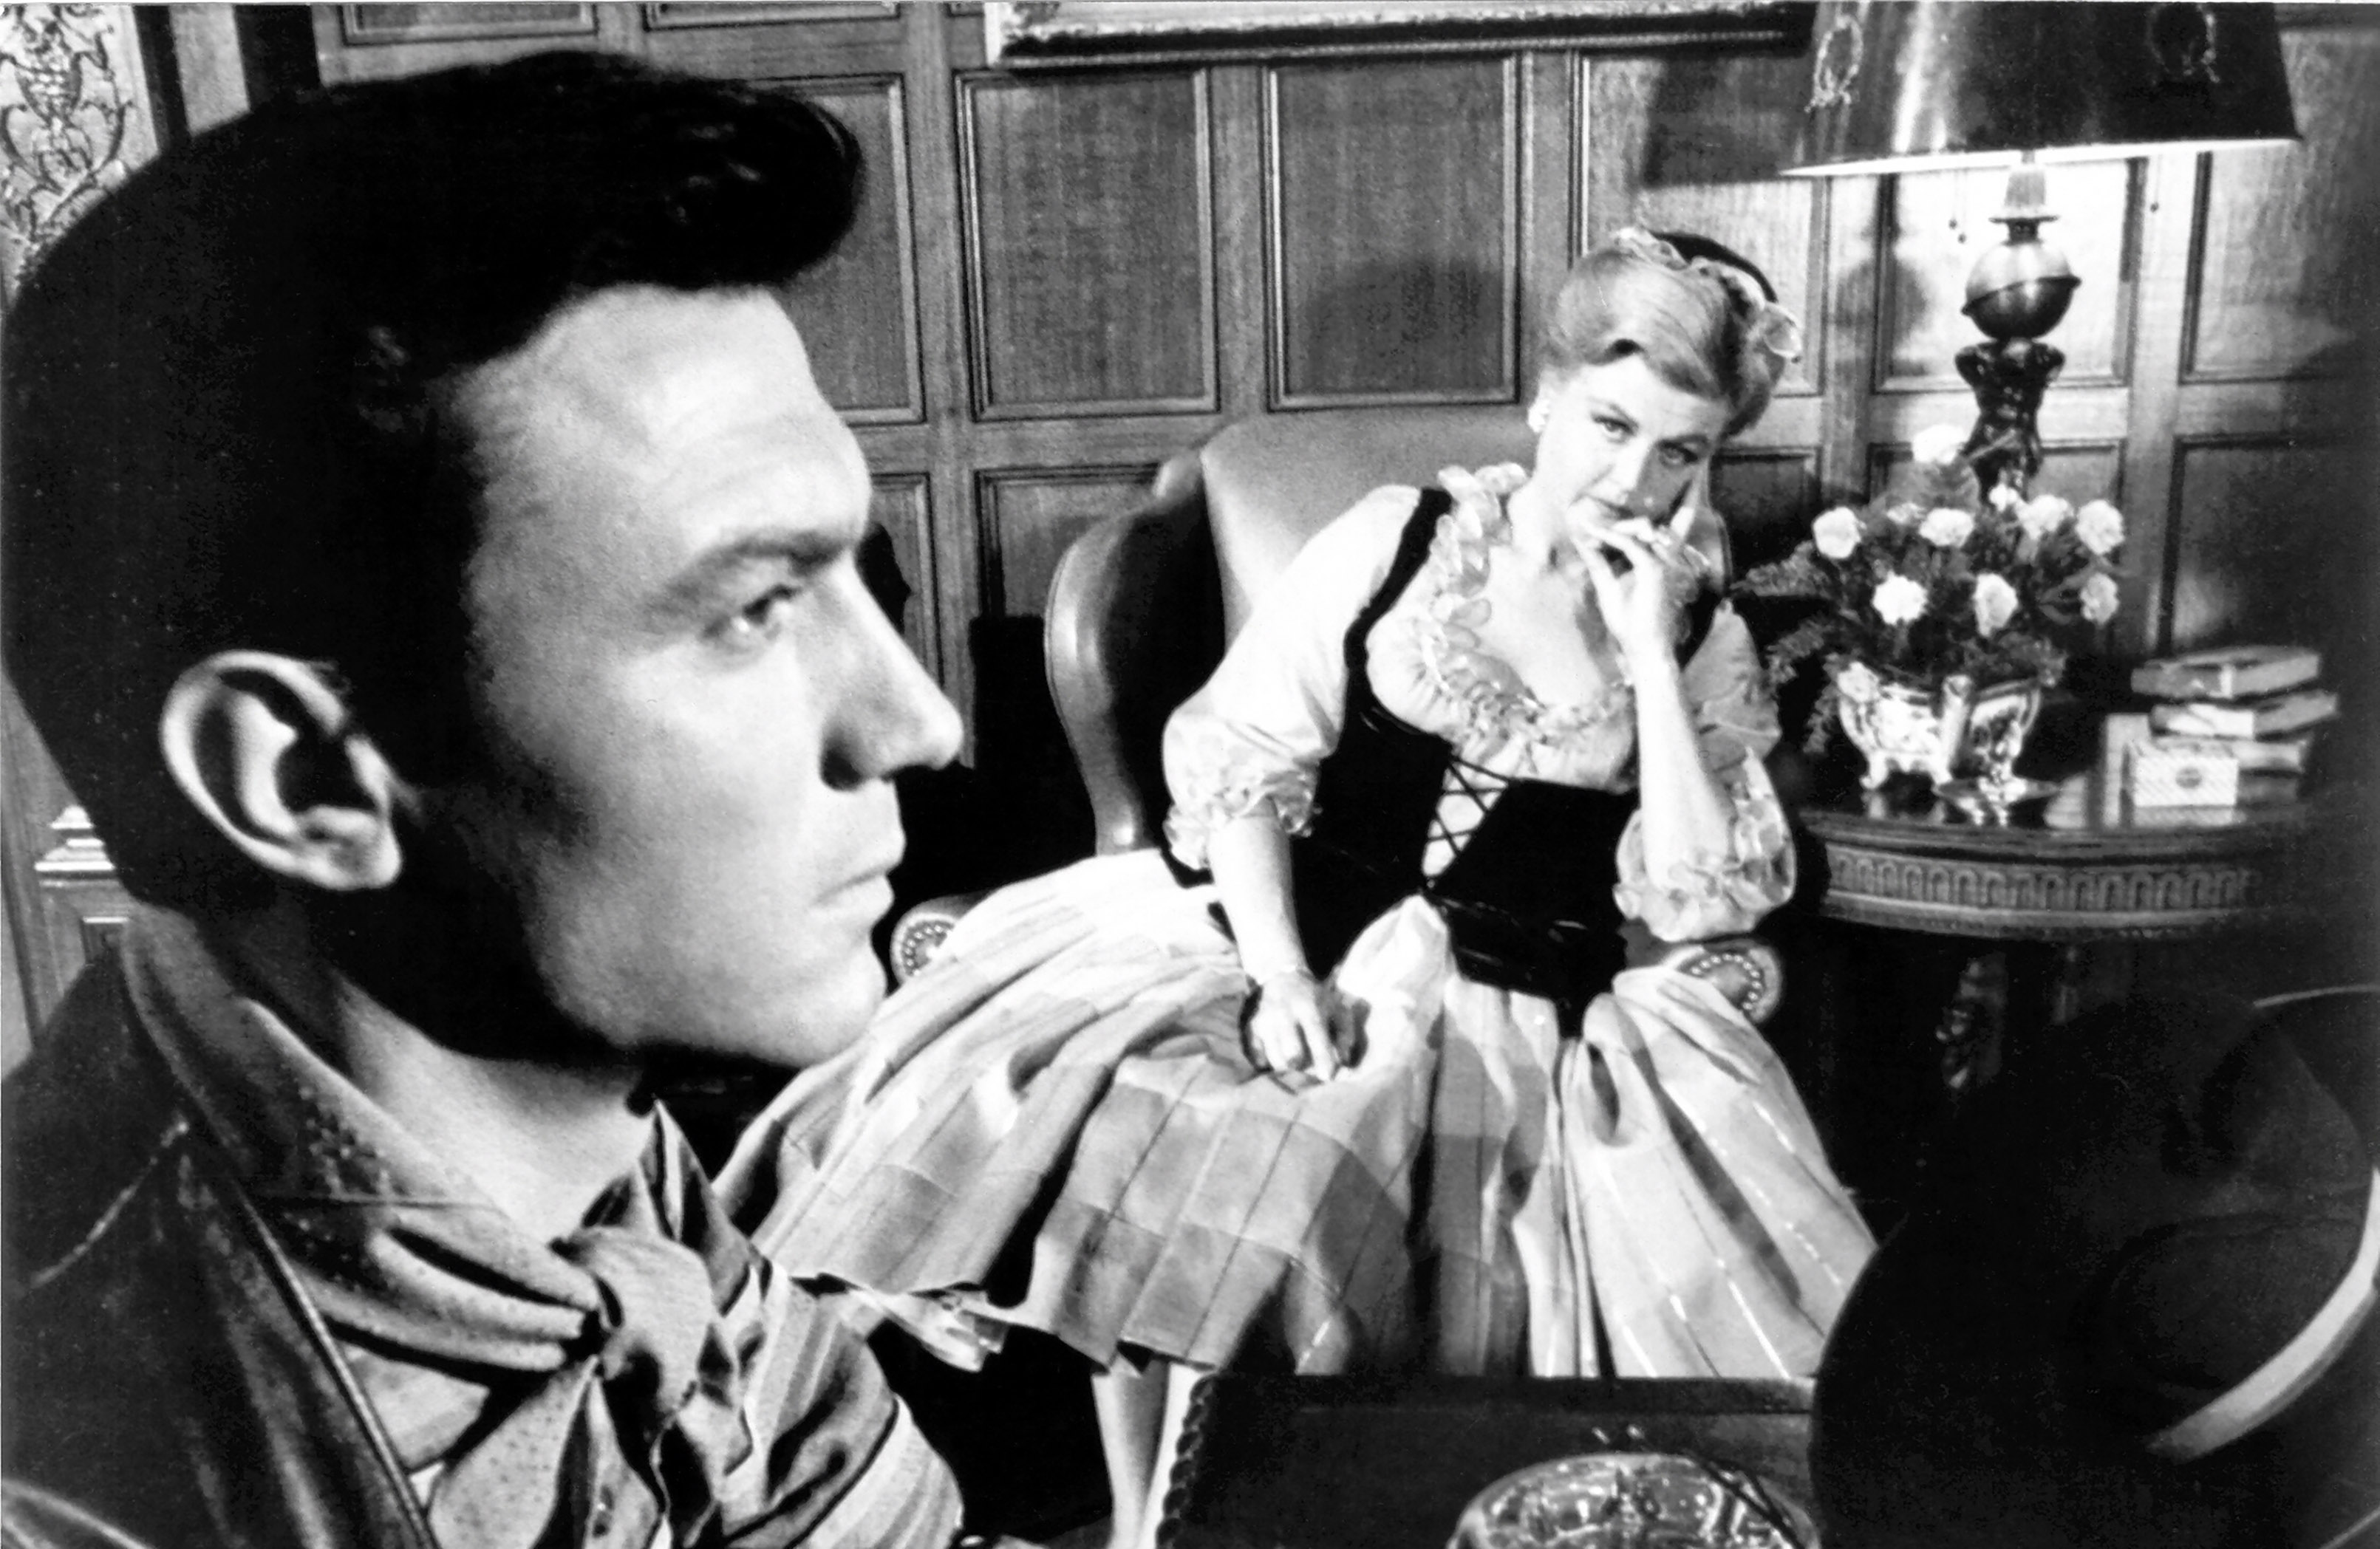 The Manchurian Candidate (1962)Directed by John Frankenheimer Shown from left: Laurence Harvey, Angela Lansbury